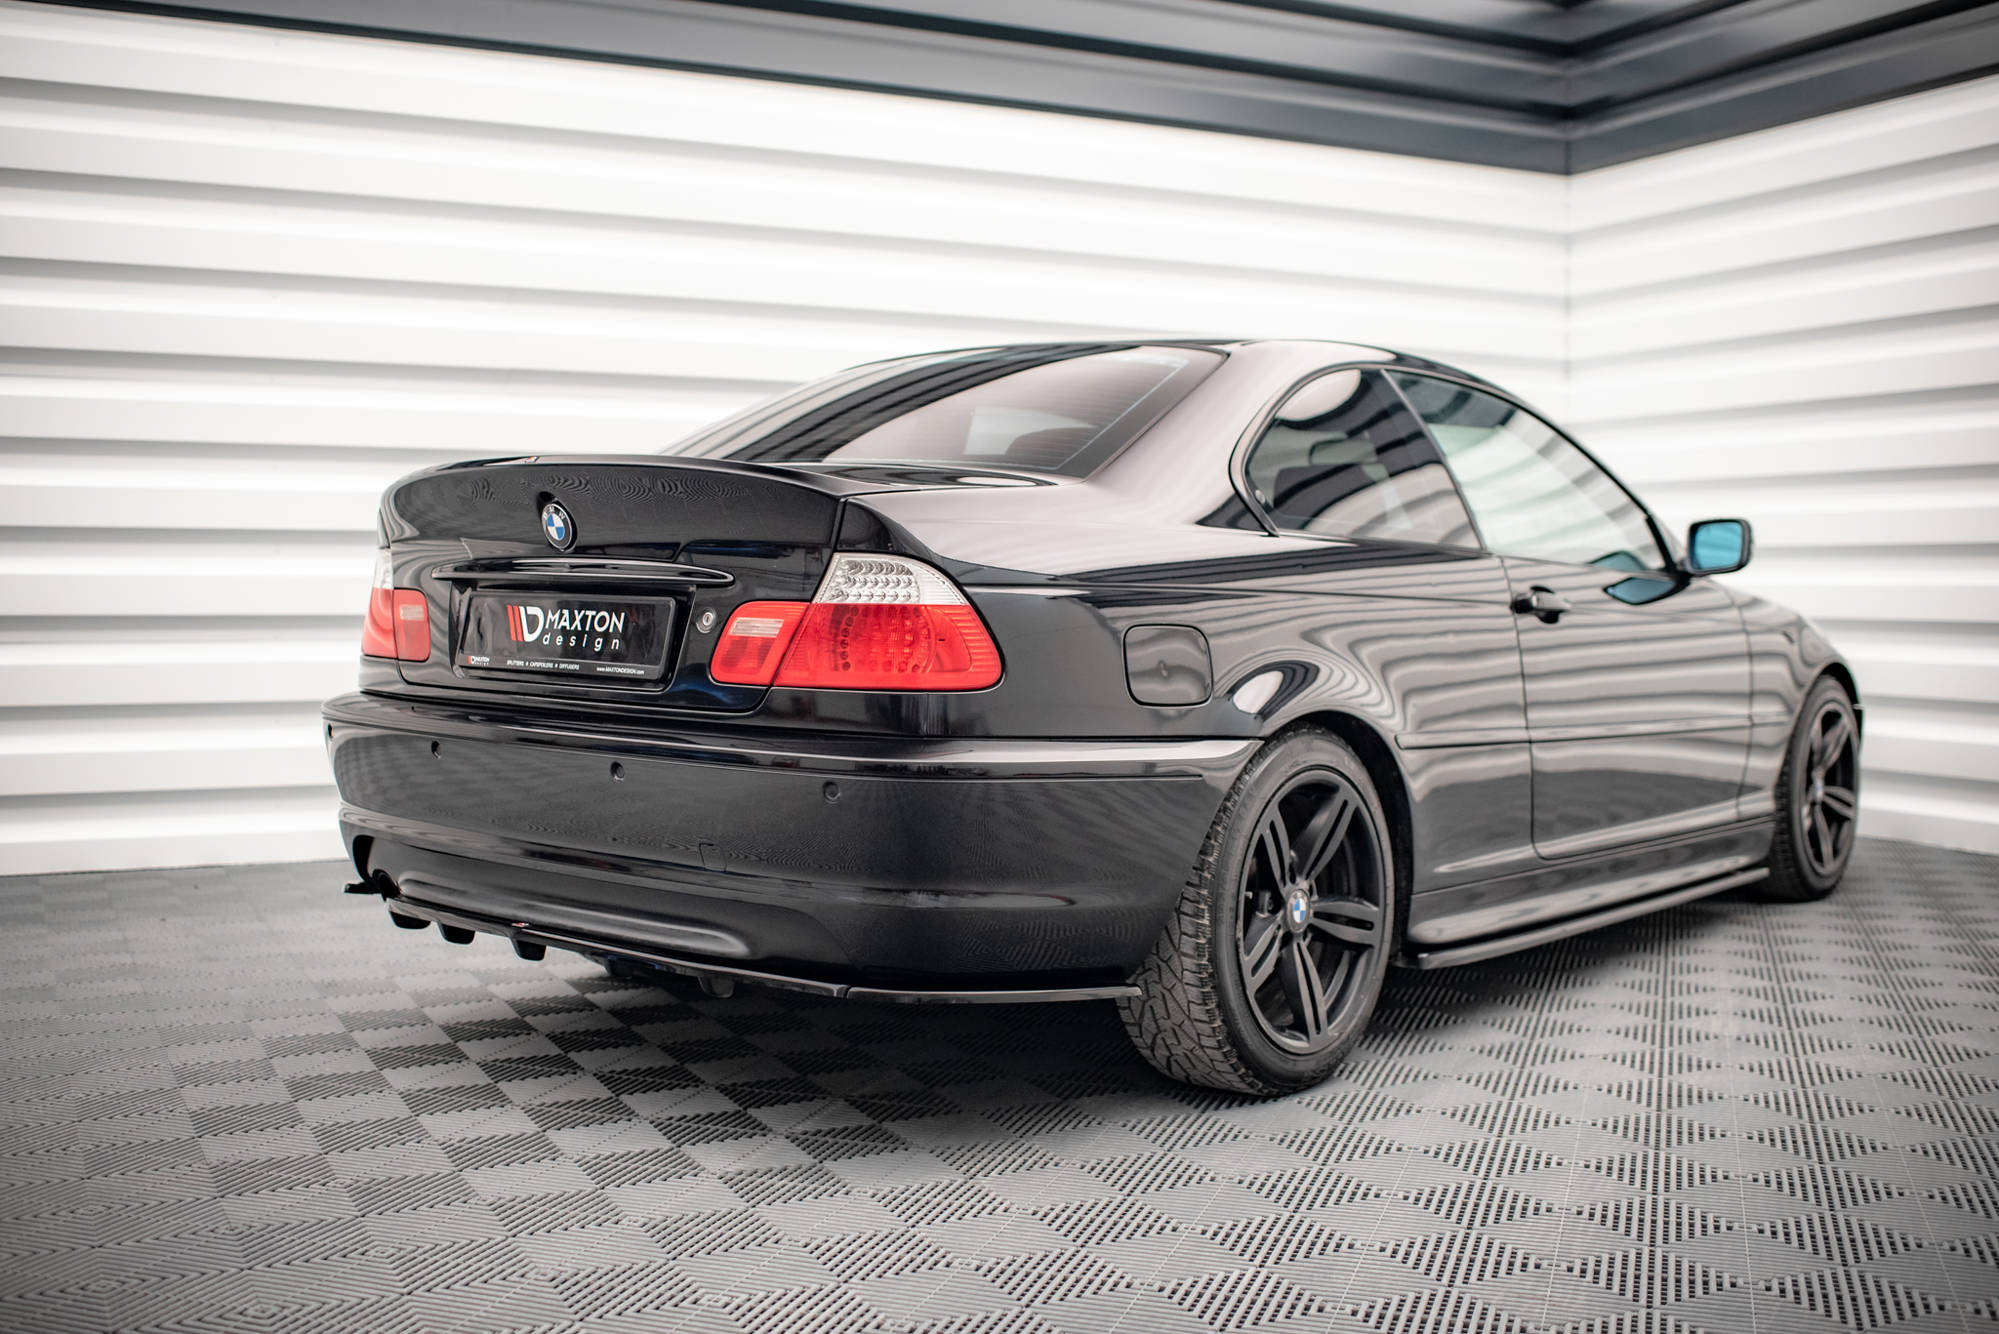 Rear Spoiler Lid Extension Bmw 3 E46 Coupe Preface M3 Csl Look For Painting